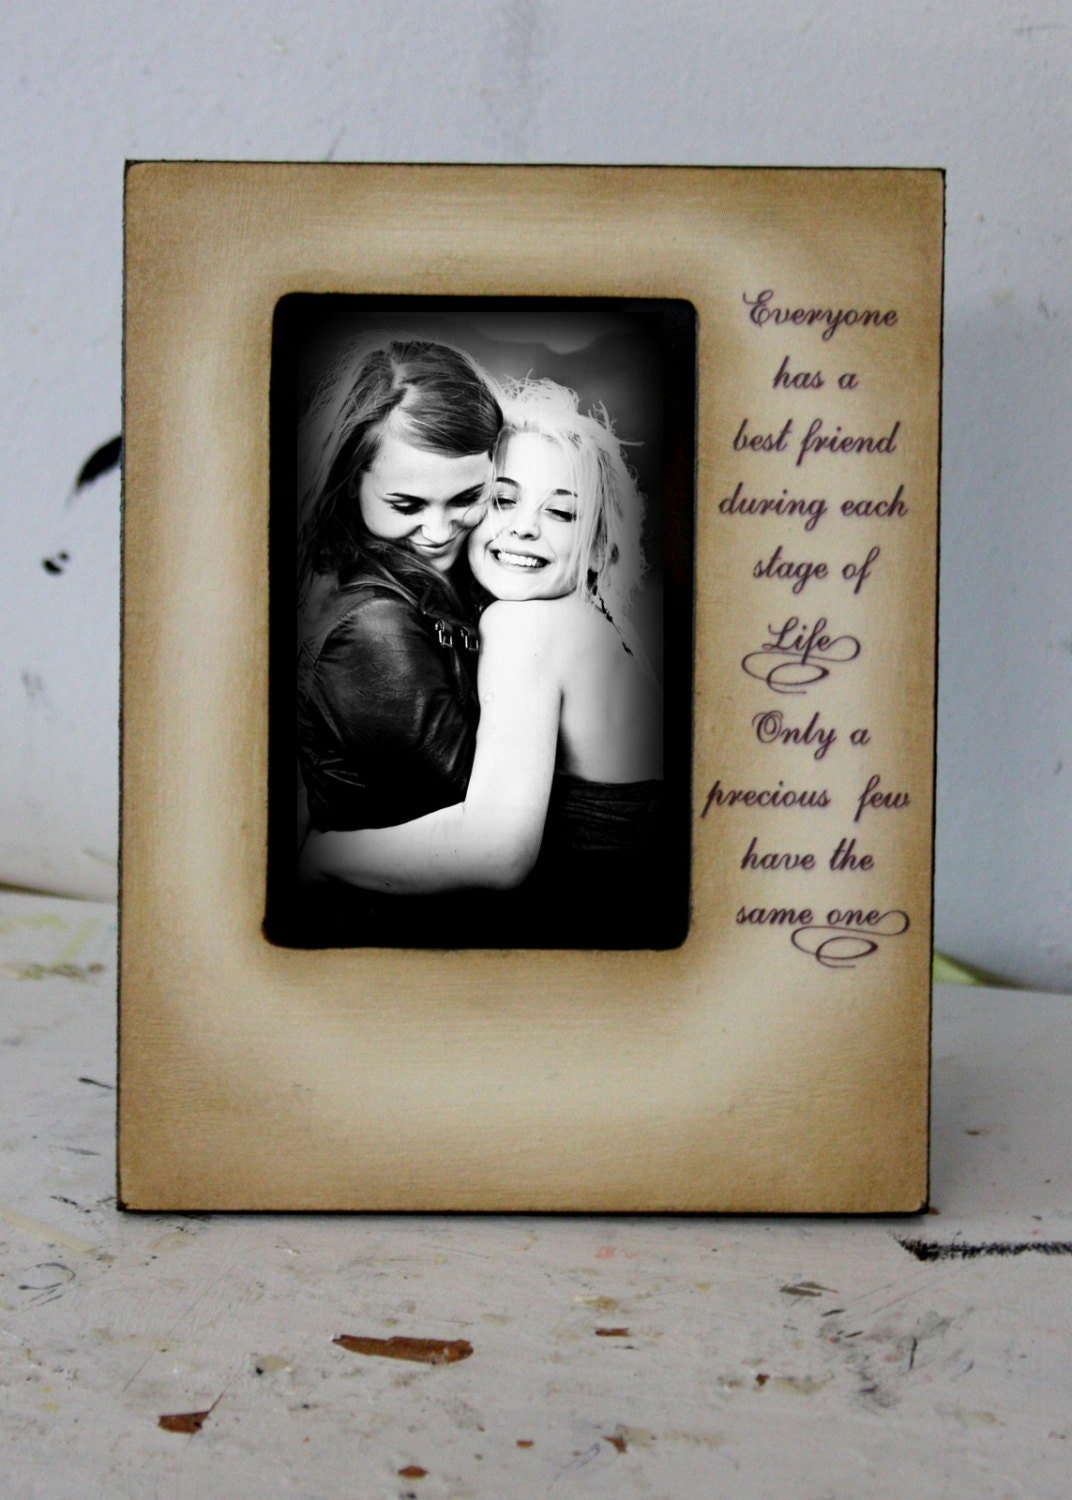 Wood Picture Frame For Best Friend Mom Dad Sister Brother